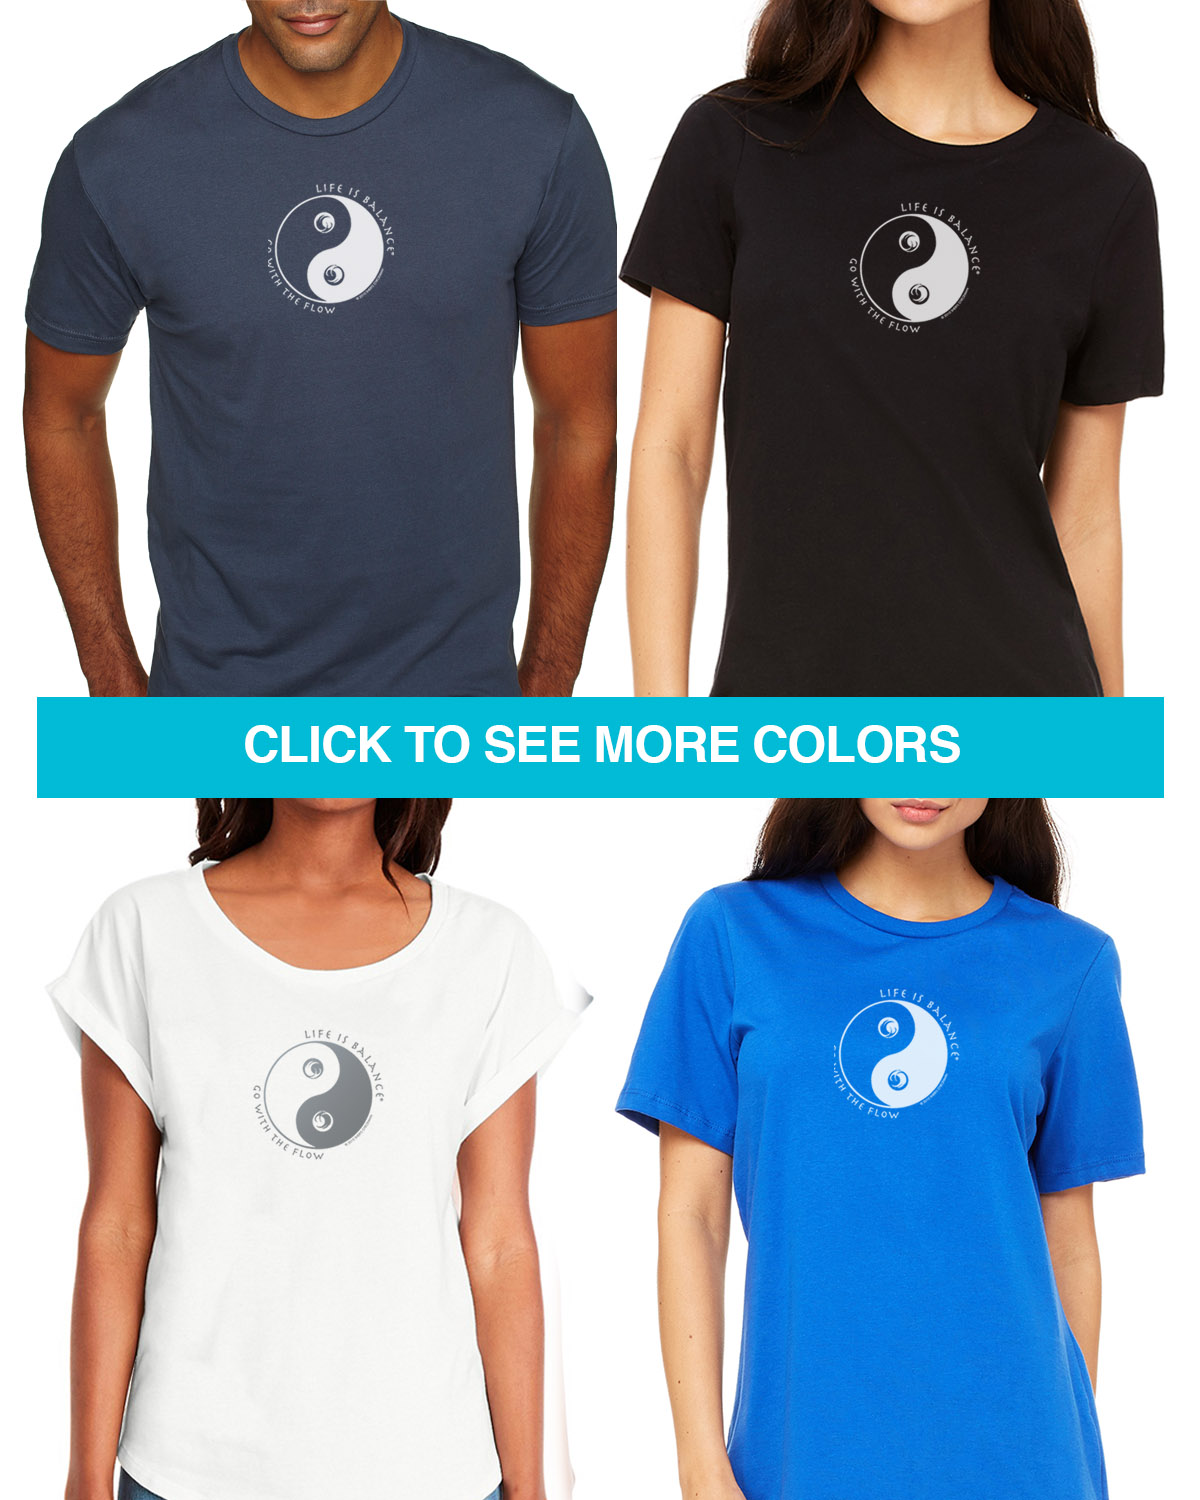 Ocean Tees for Men & Women